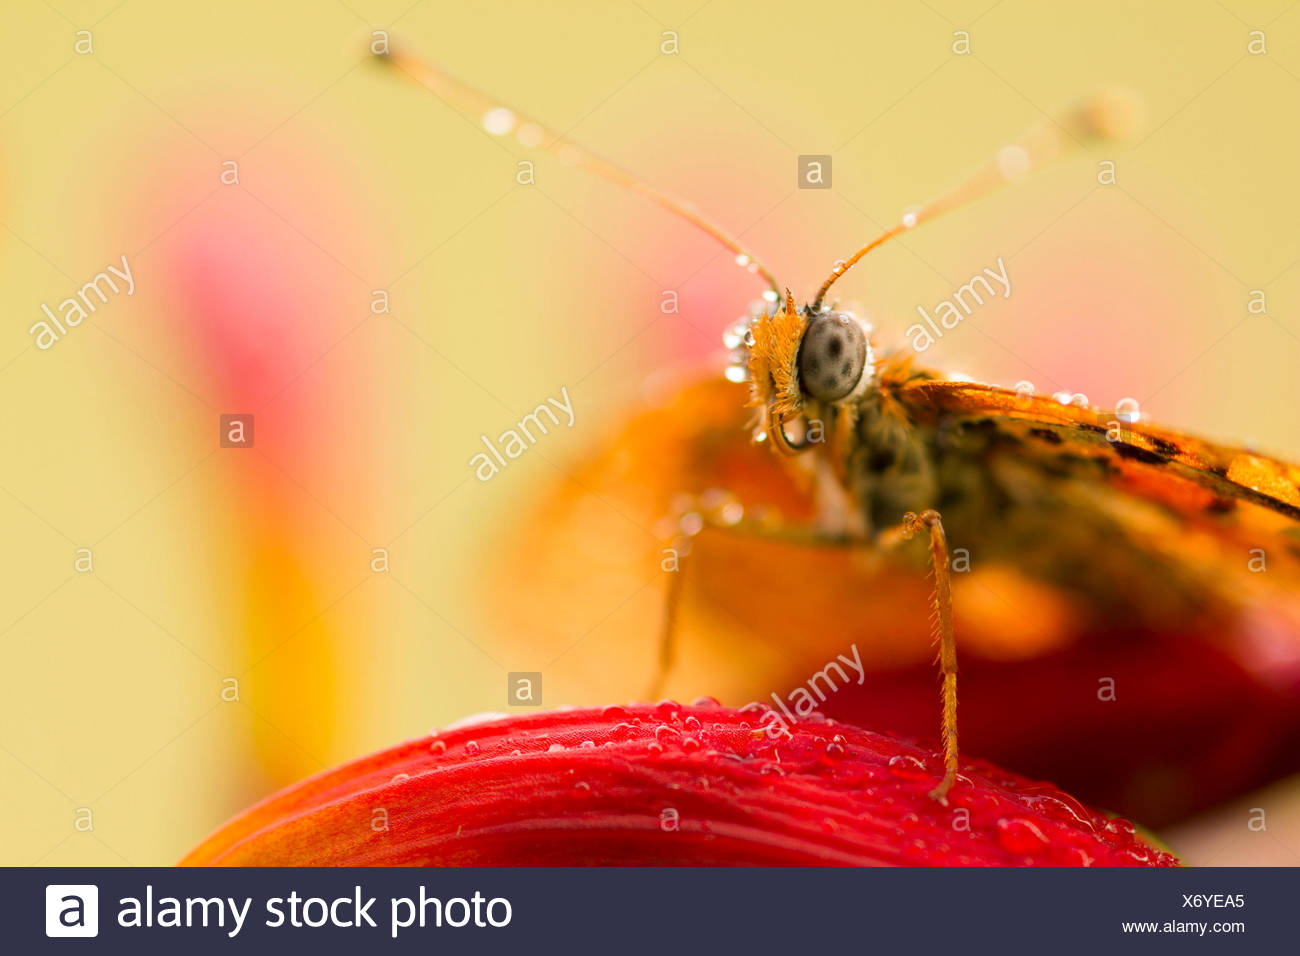 Detail of a Melitea still unable to fly and covered with dew. Lombardy, Italy - Stock Image